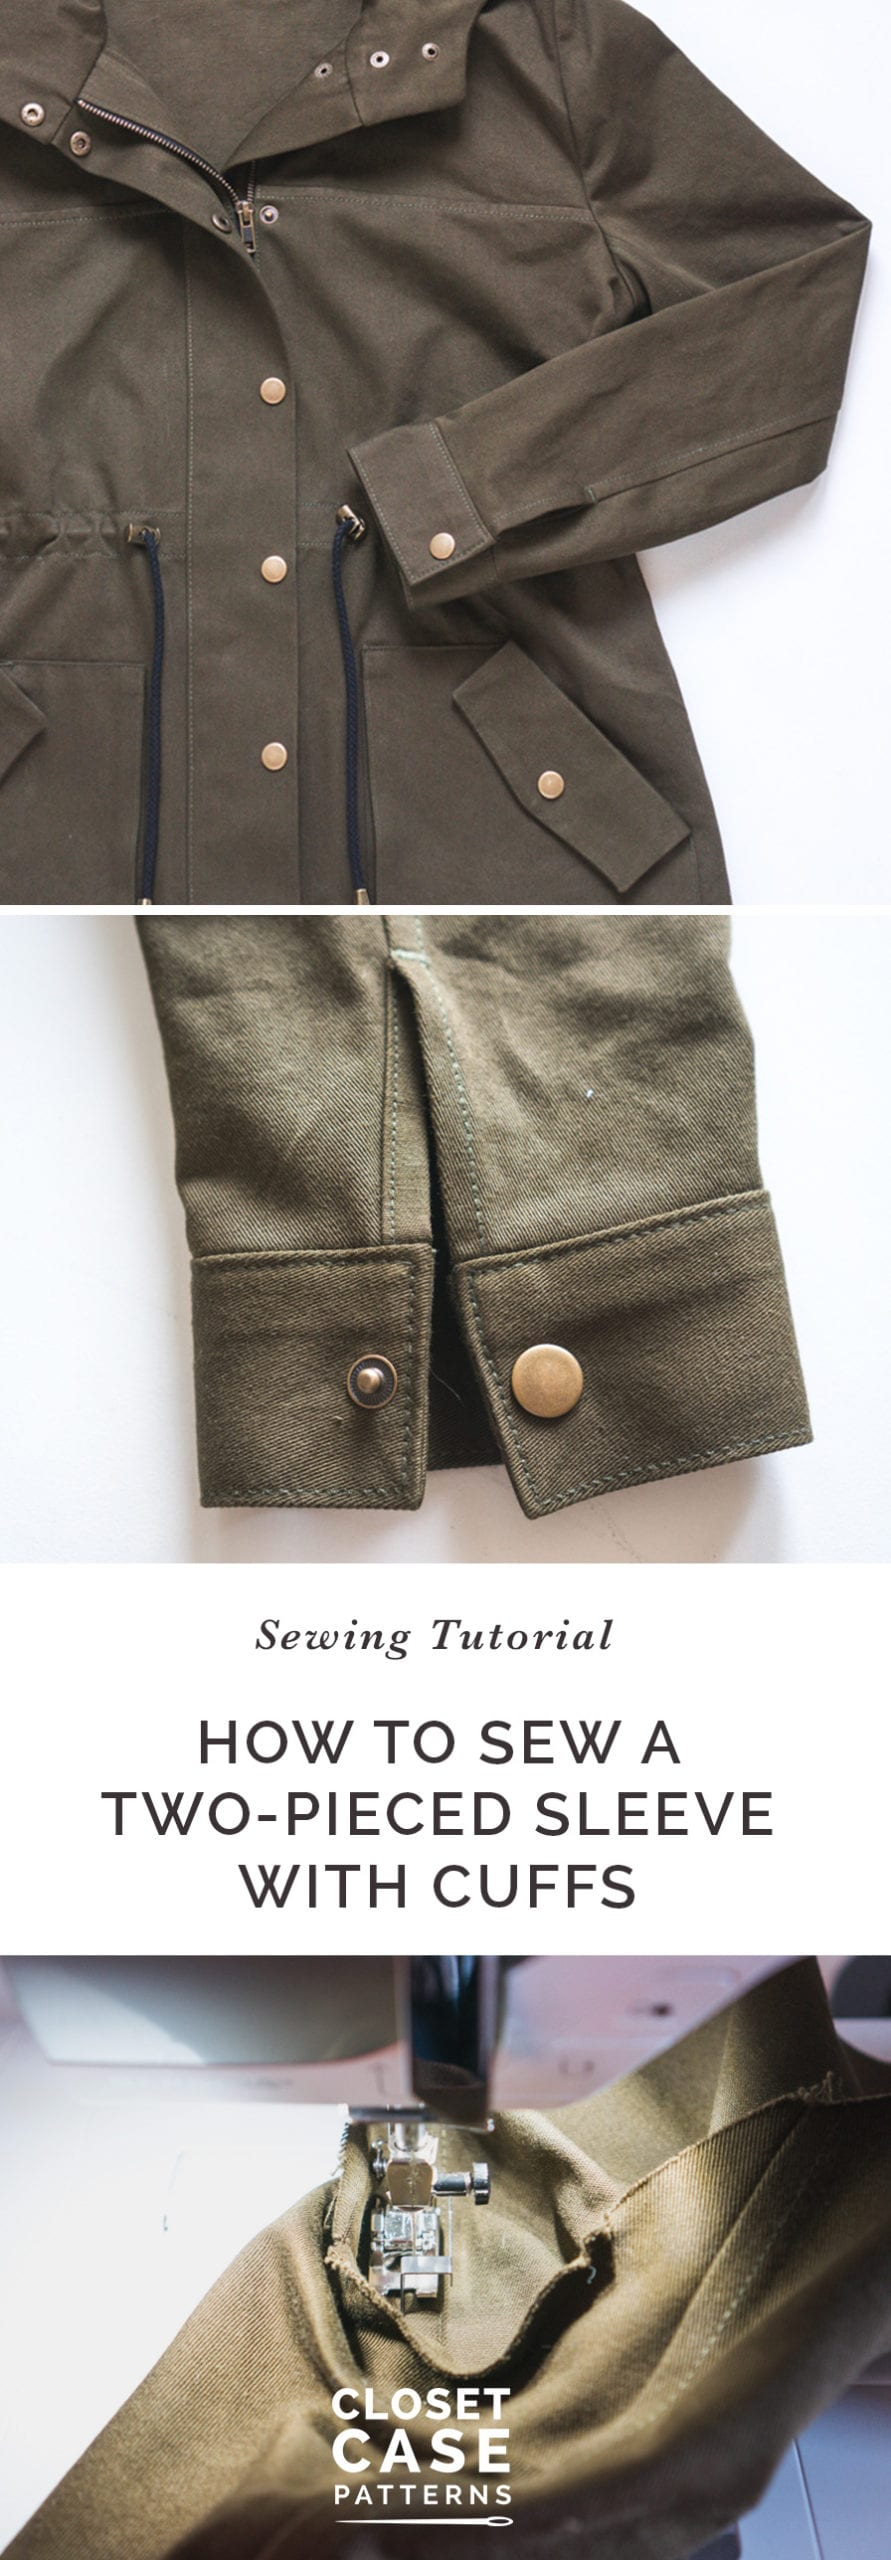 Setting in Sleeves & Cuffs (Unlined Version) // Kelly Anorak Sewalong